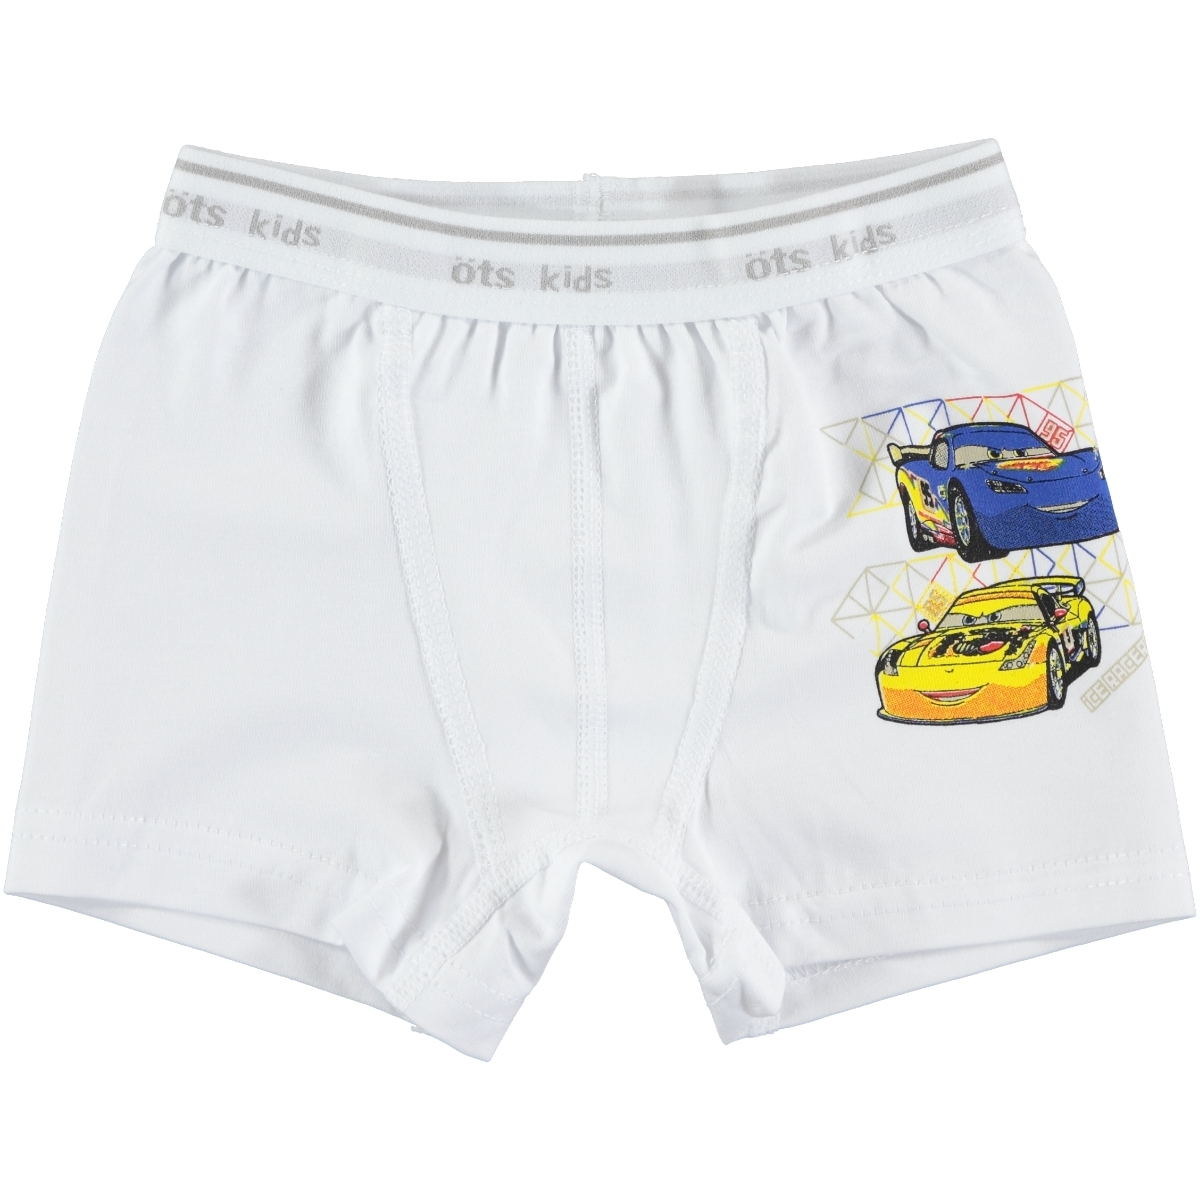 Öts Combed Cotton White Boxer Boy Age 2-12